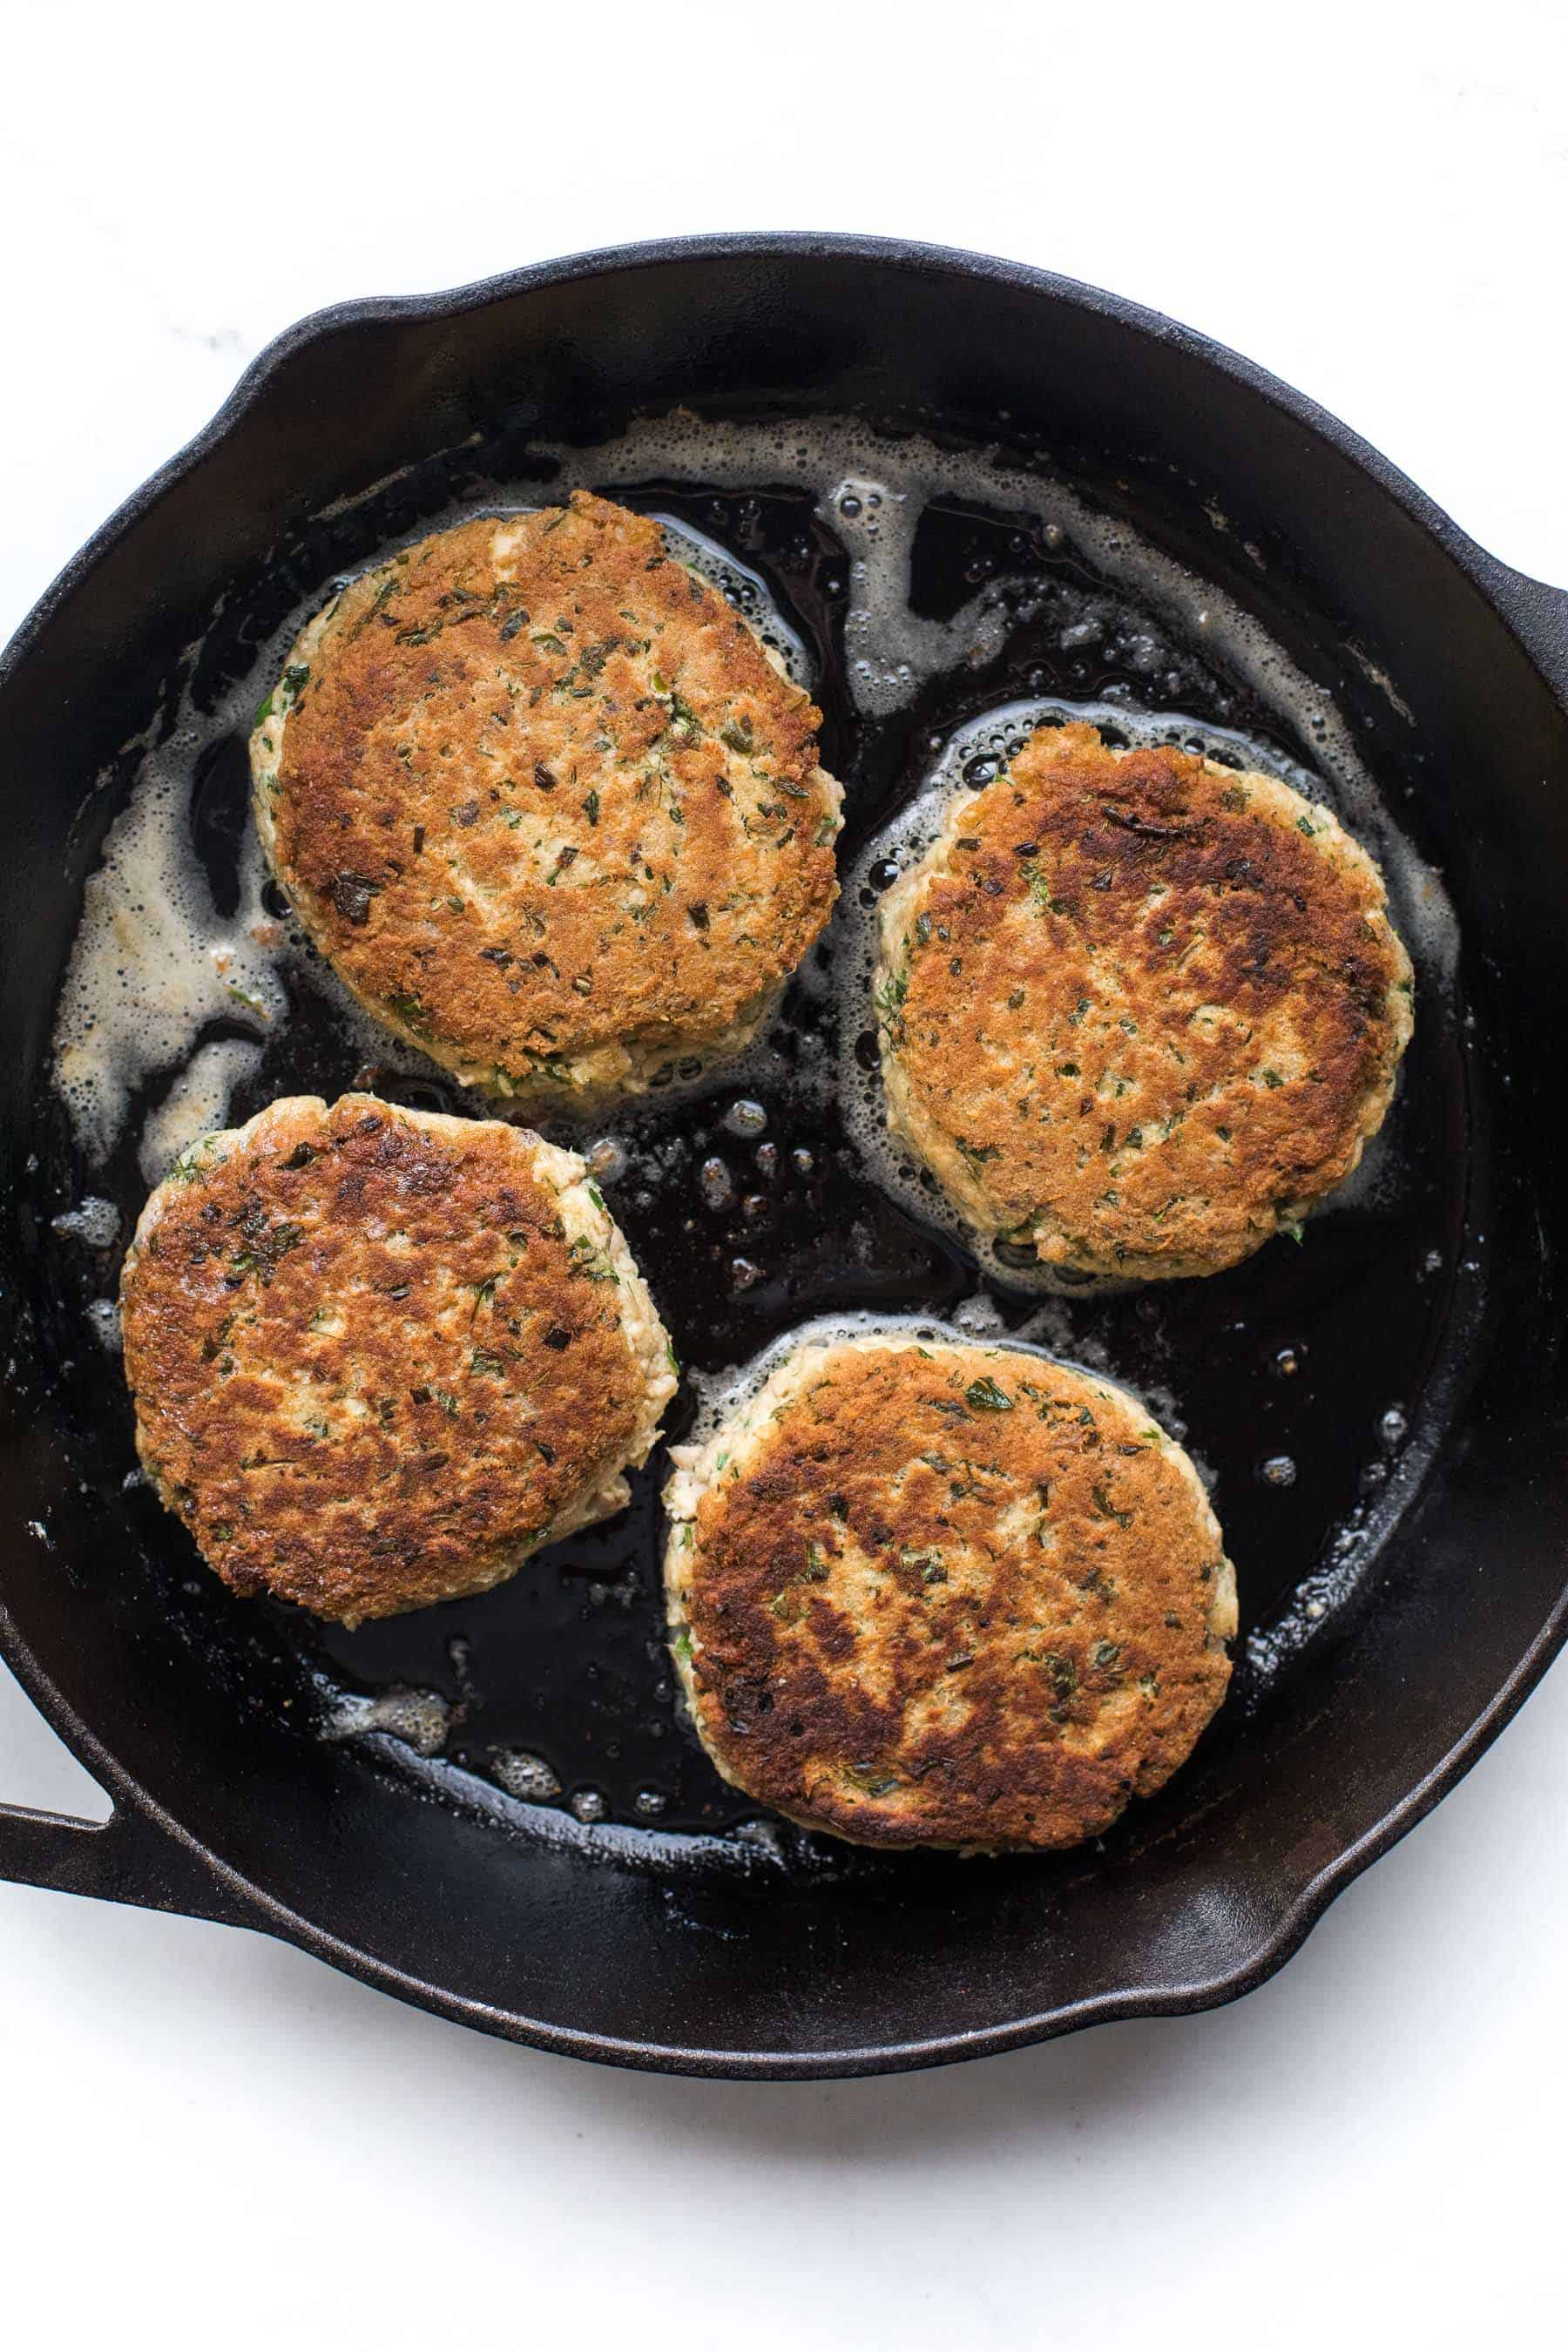 Salmon cakes cooking in a cast iron skillet